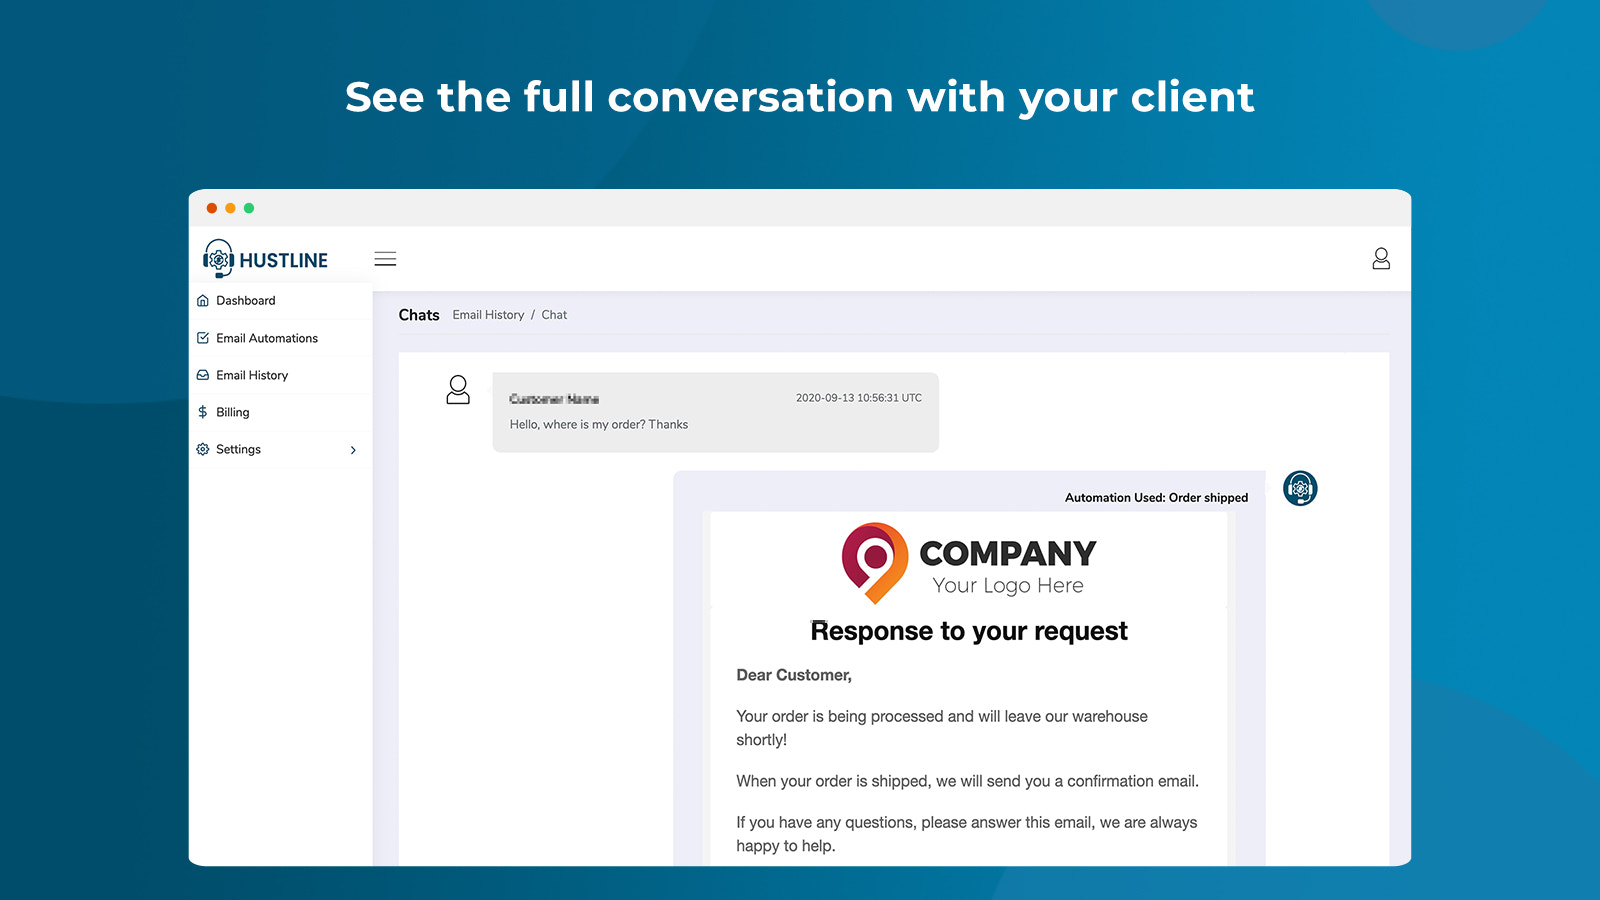 See the full conversation with your client